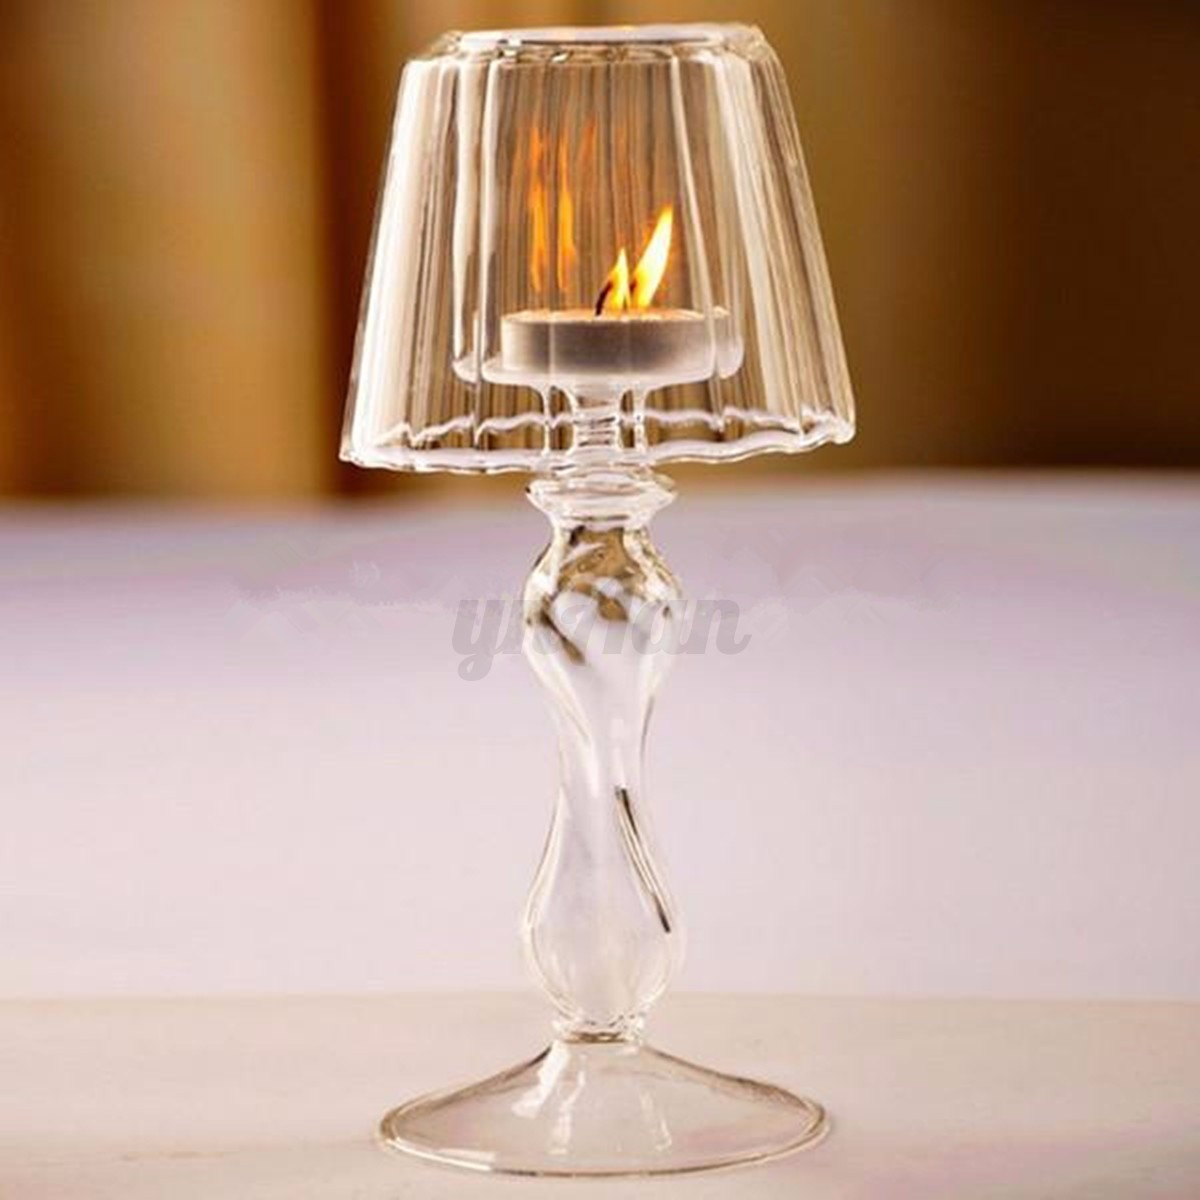 Tealight Lamp Glass Retro Crystal Candle Tea Light Lamp Holder Wedding